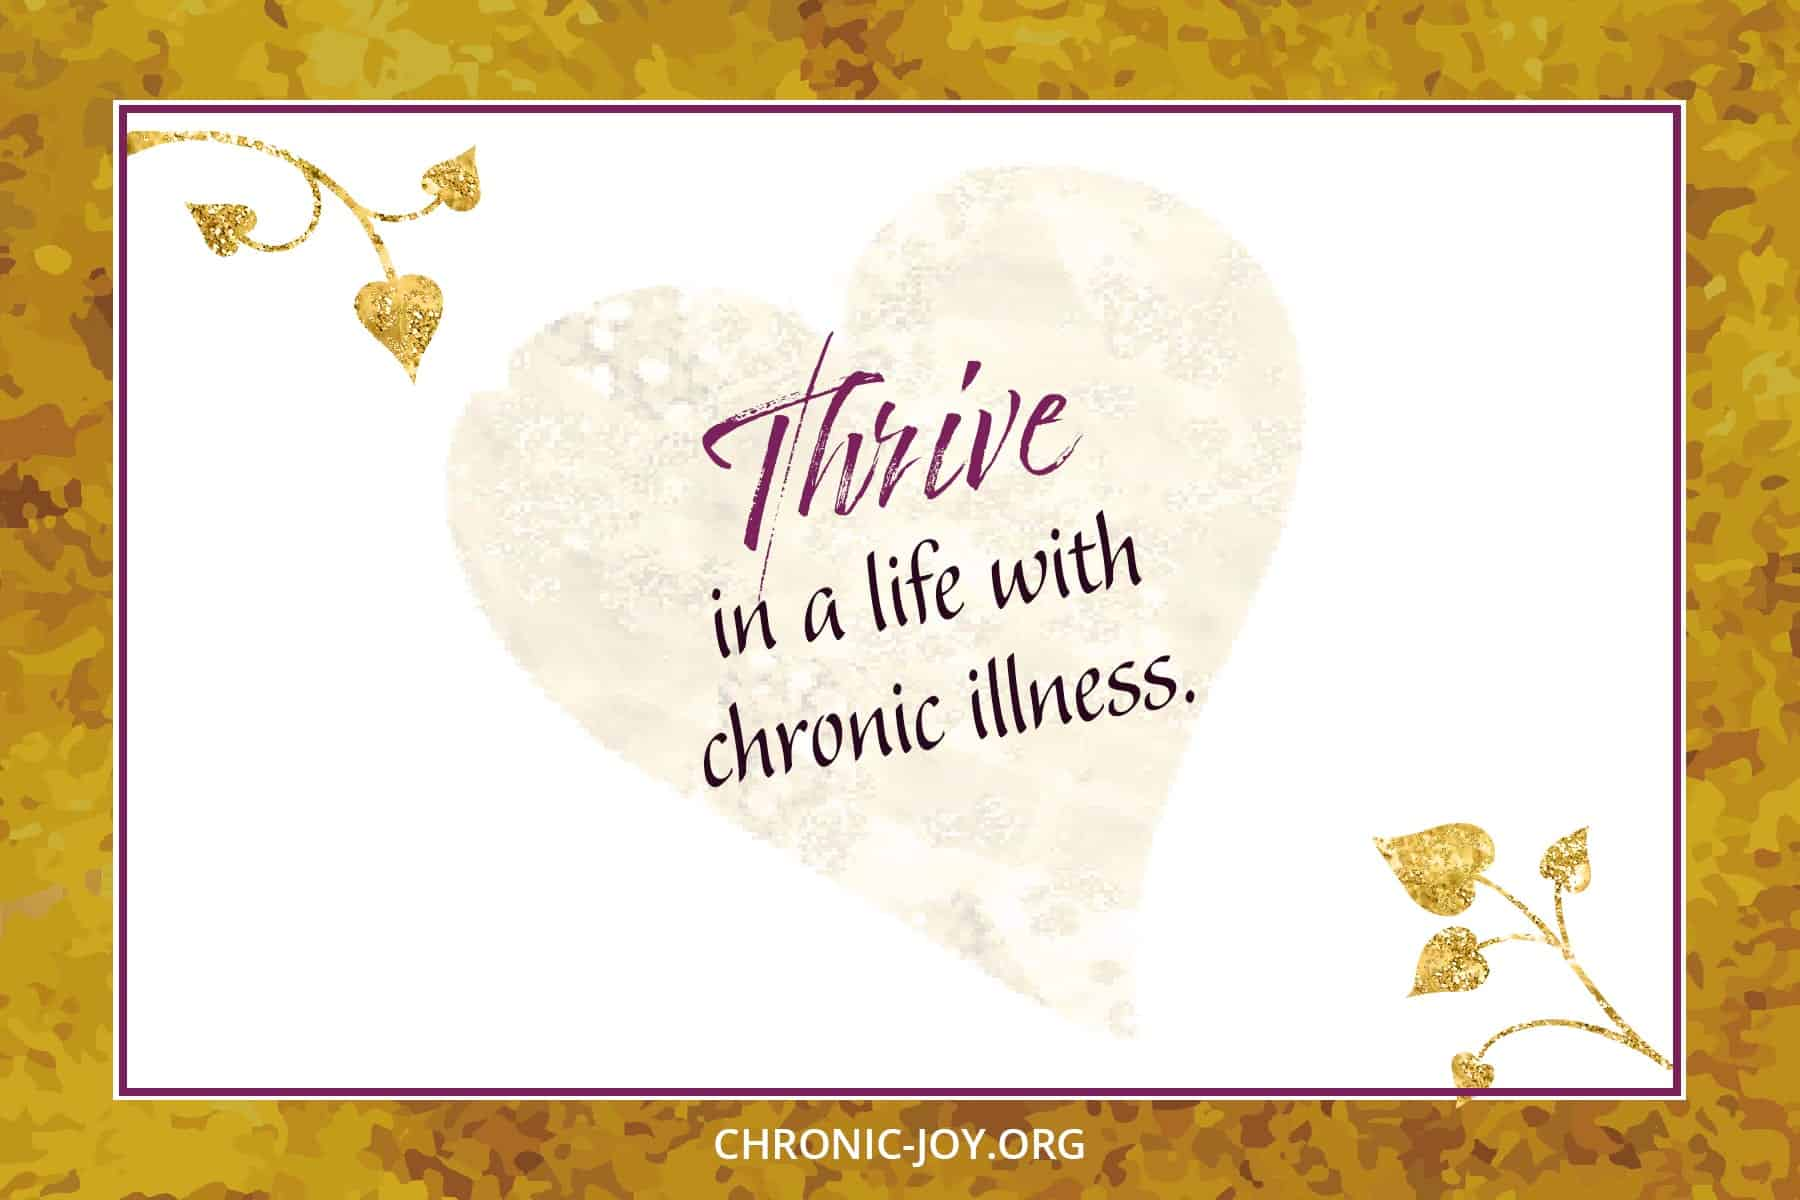 Thrive in a life with chronic illness.